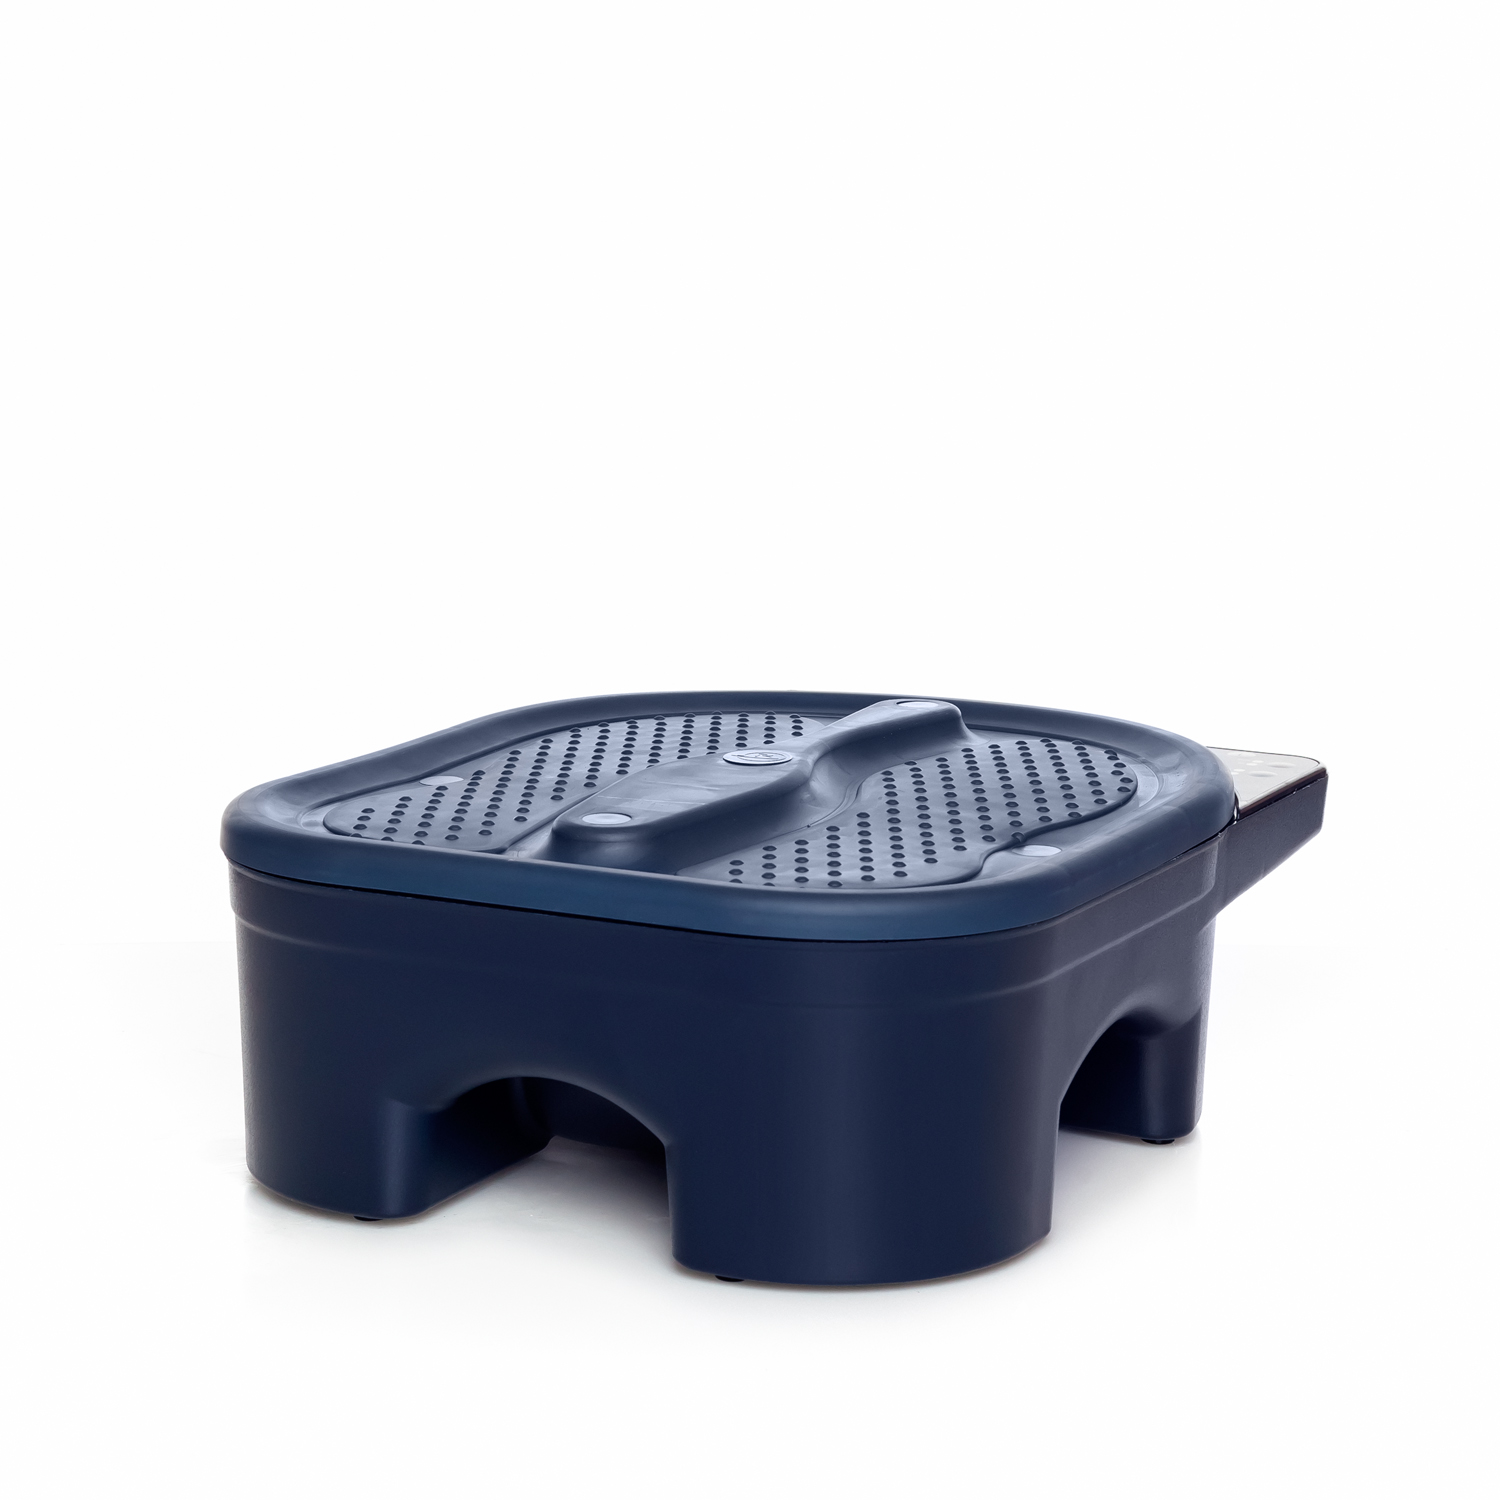 Belava pro foot heater massager foot bath free tub for Tub liners cost